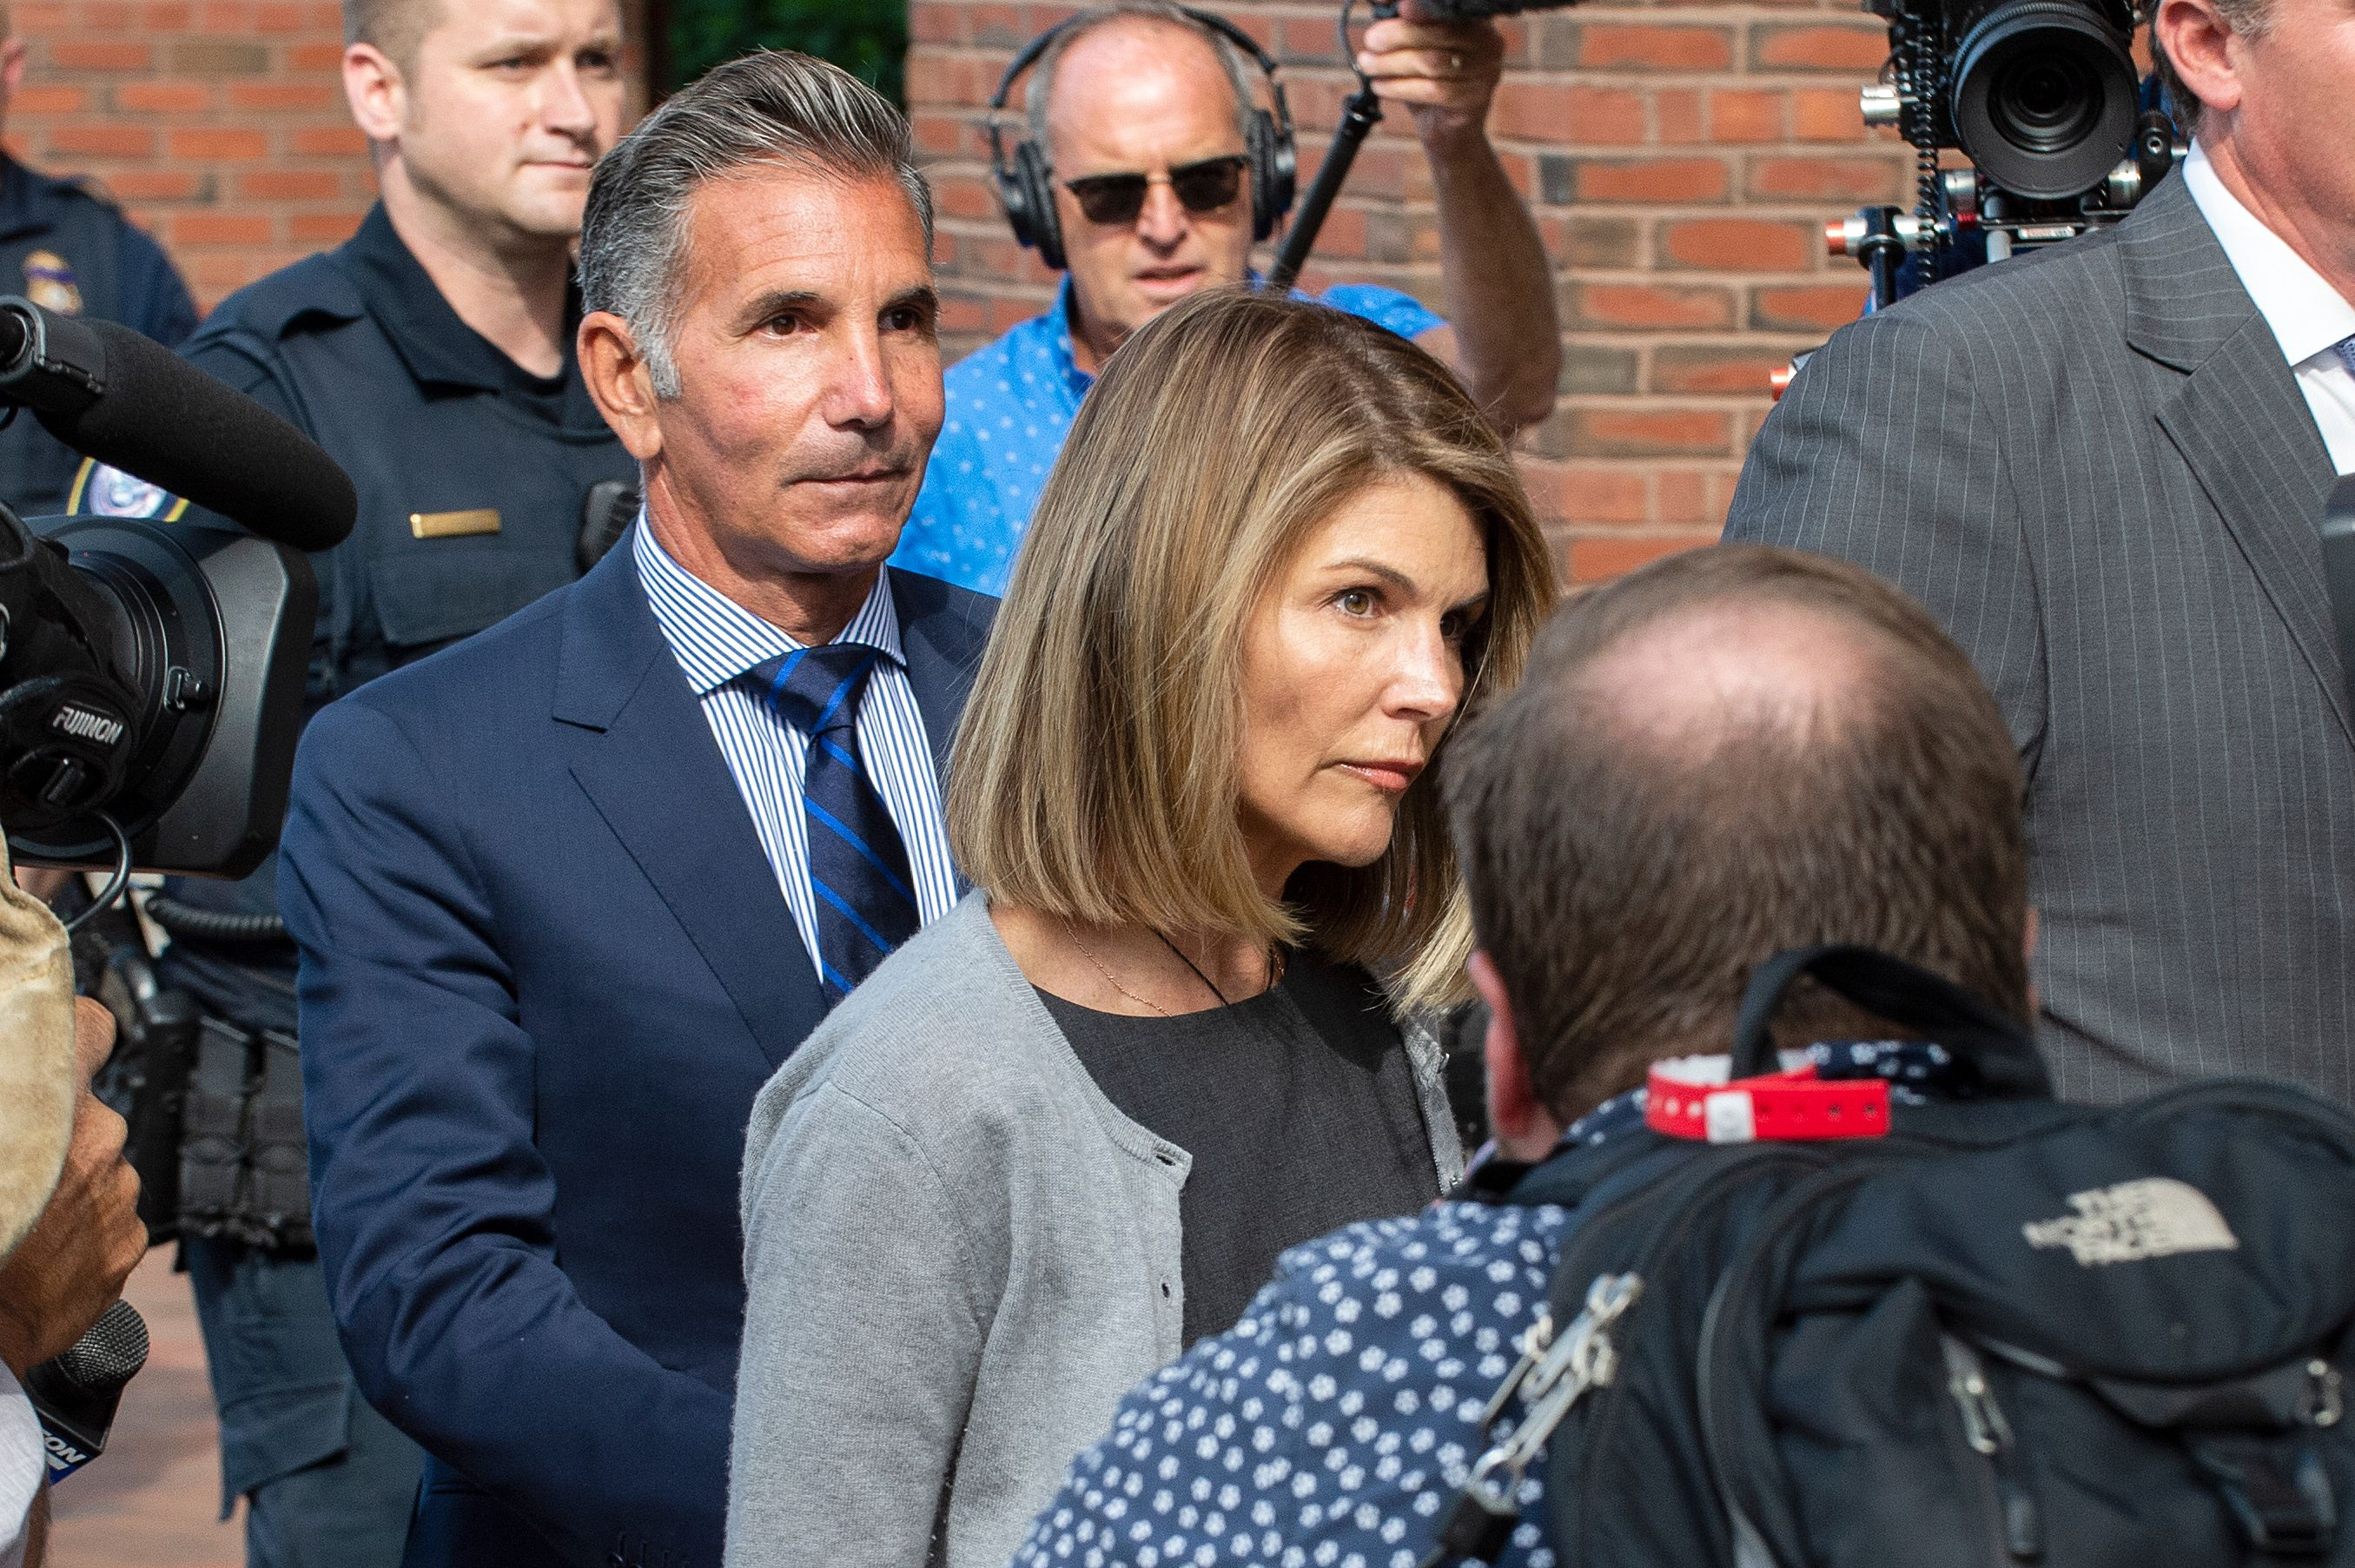 Actress Lori Loughlin and husband Mossimo Giannulli exit the Boston Federal Court house after a pre-trial hearing with Magistrate Judge Kelley at the John Joseph Moakley US Courthouse in Boston on August 27, 2019. - Loughlin and Giannulli are charged with conspiracy to commit mail and wire fraud and conspiracy to commit money laundering in the college admissions scandal. (Photo credit JOSEPH PREZIOSO/AFP via Getty Images)